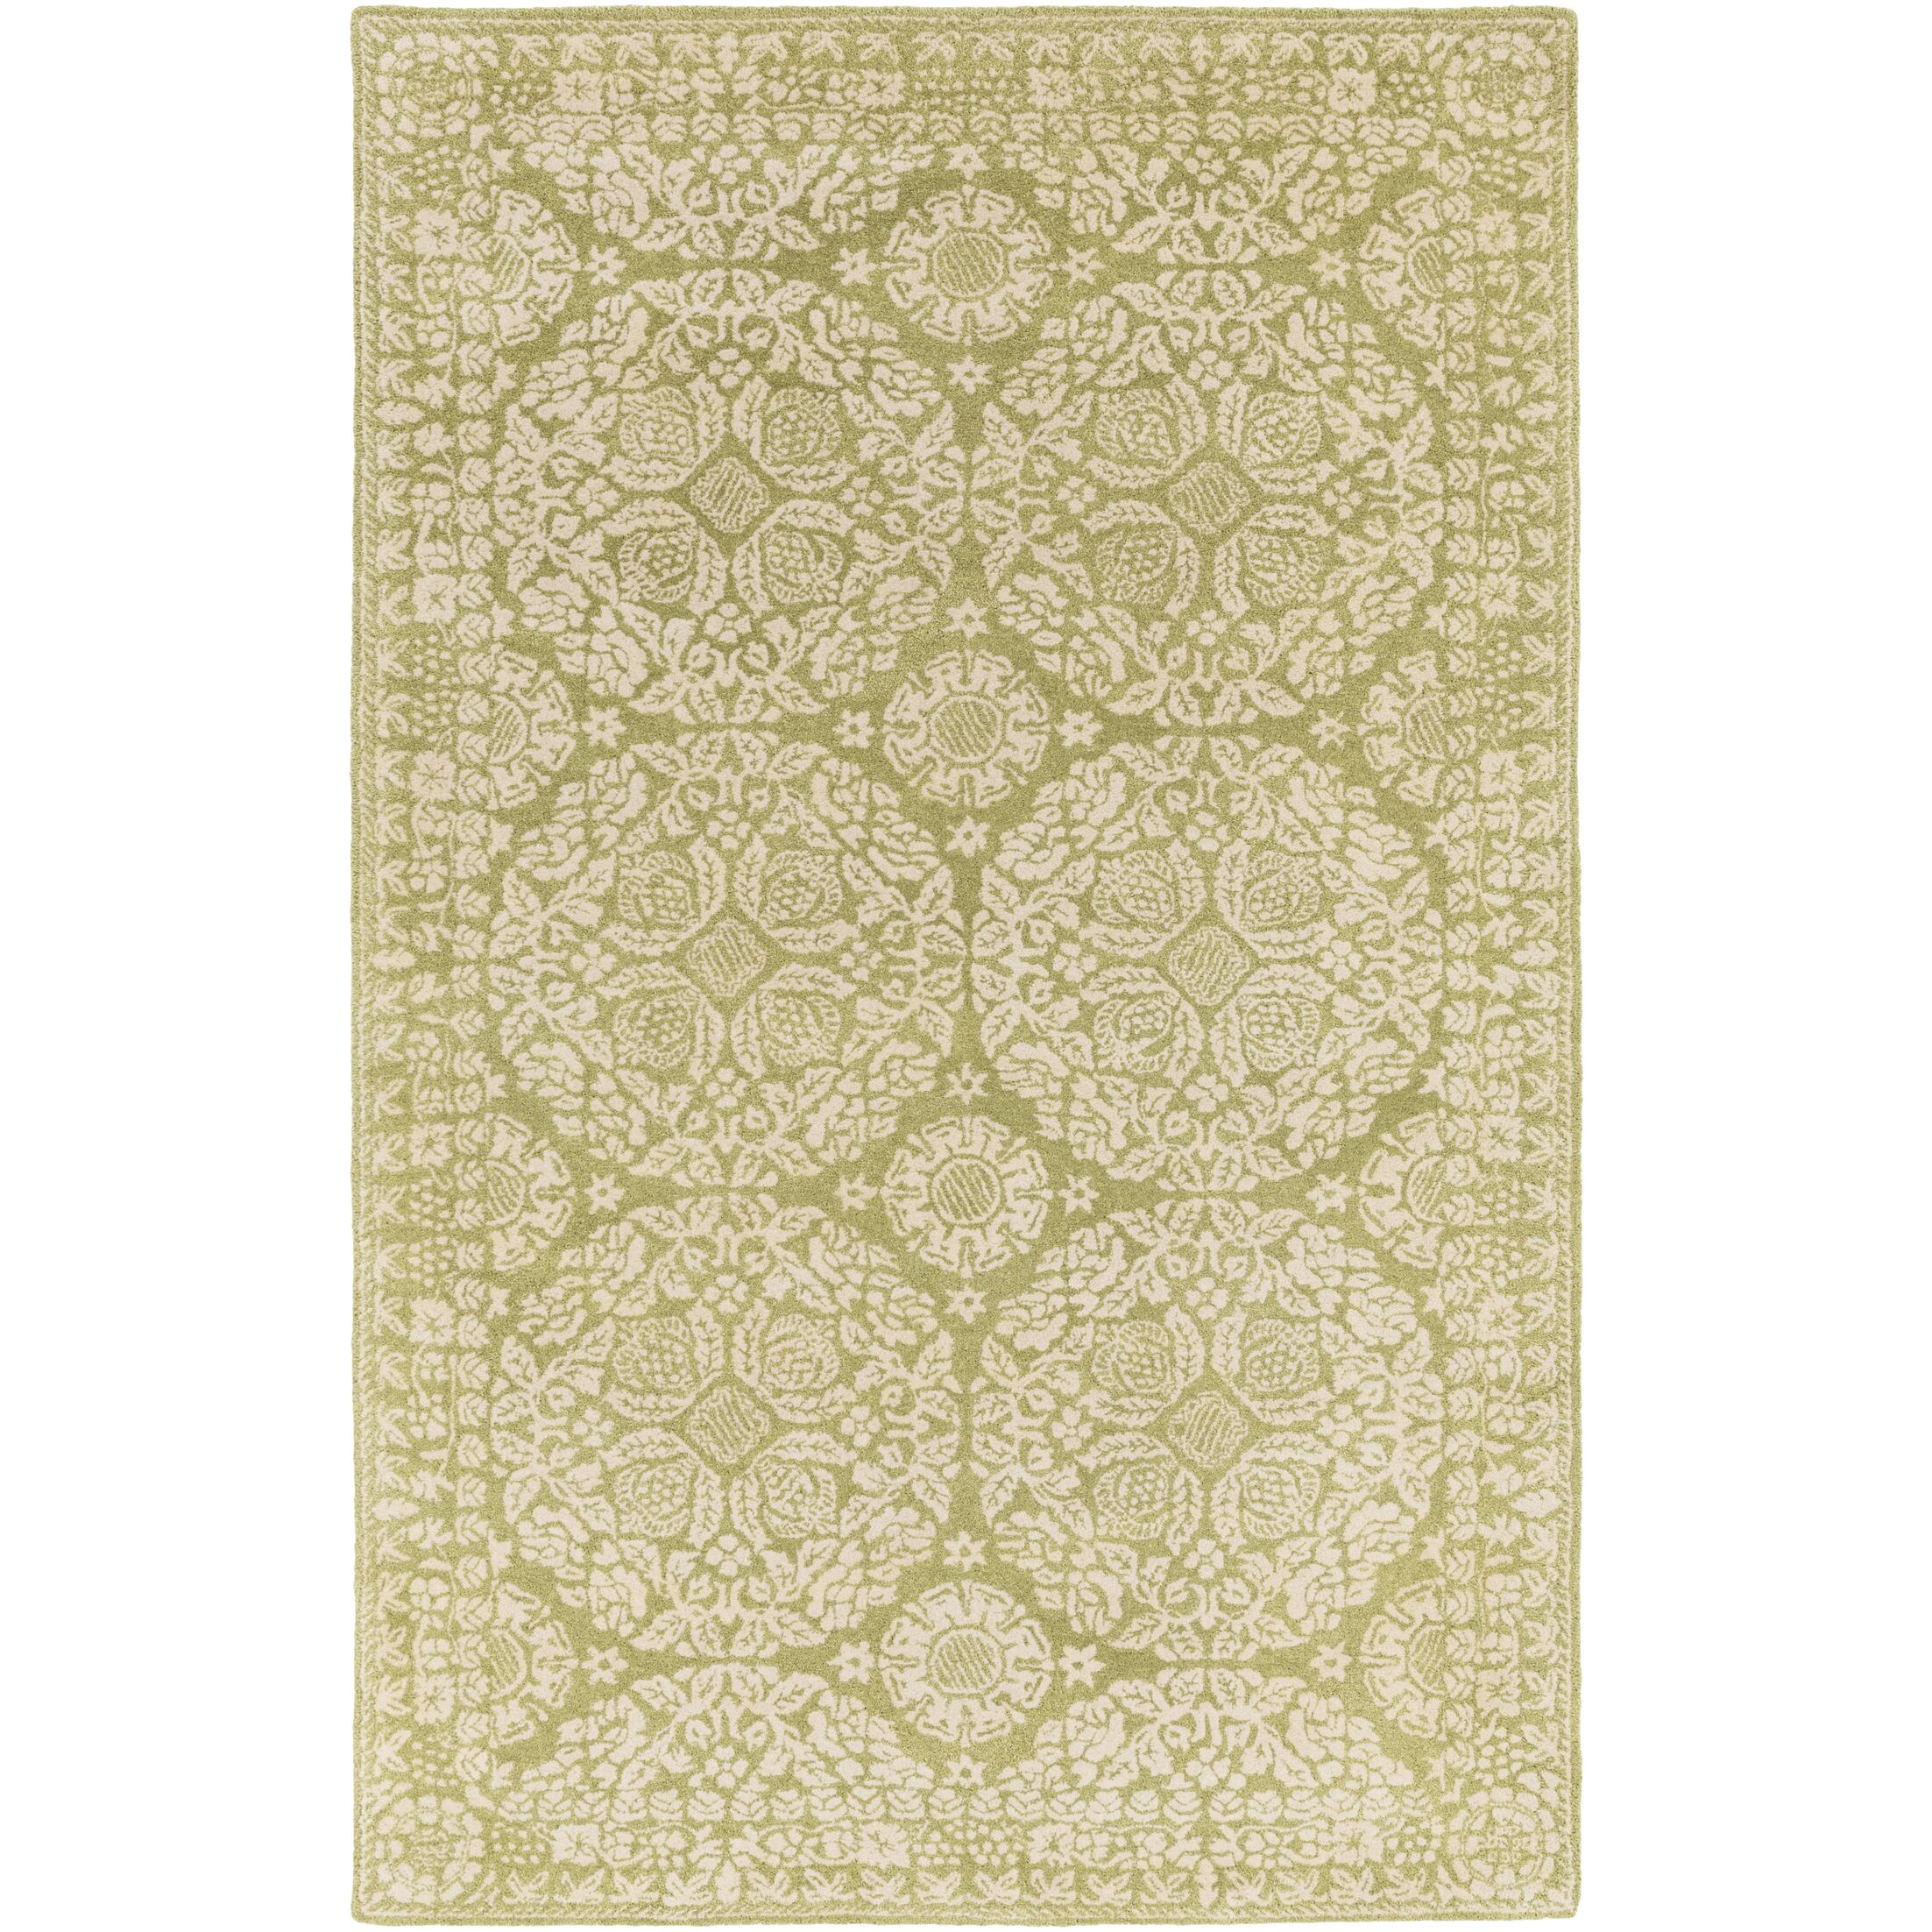 Smithsonian Hand-Tufted Green/Neutral Area Rug Rug Size: Rectangle 8' x 11'